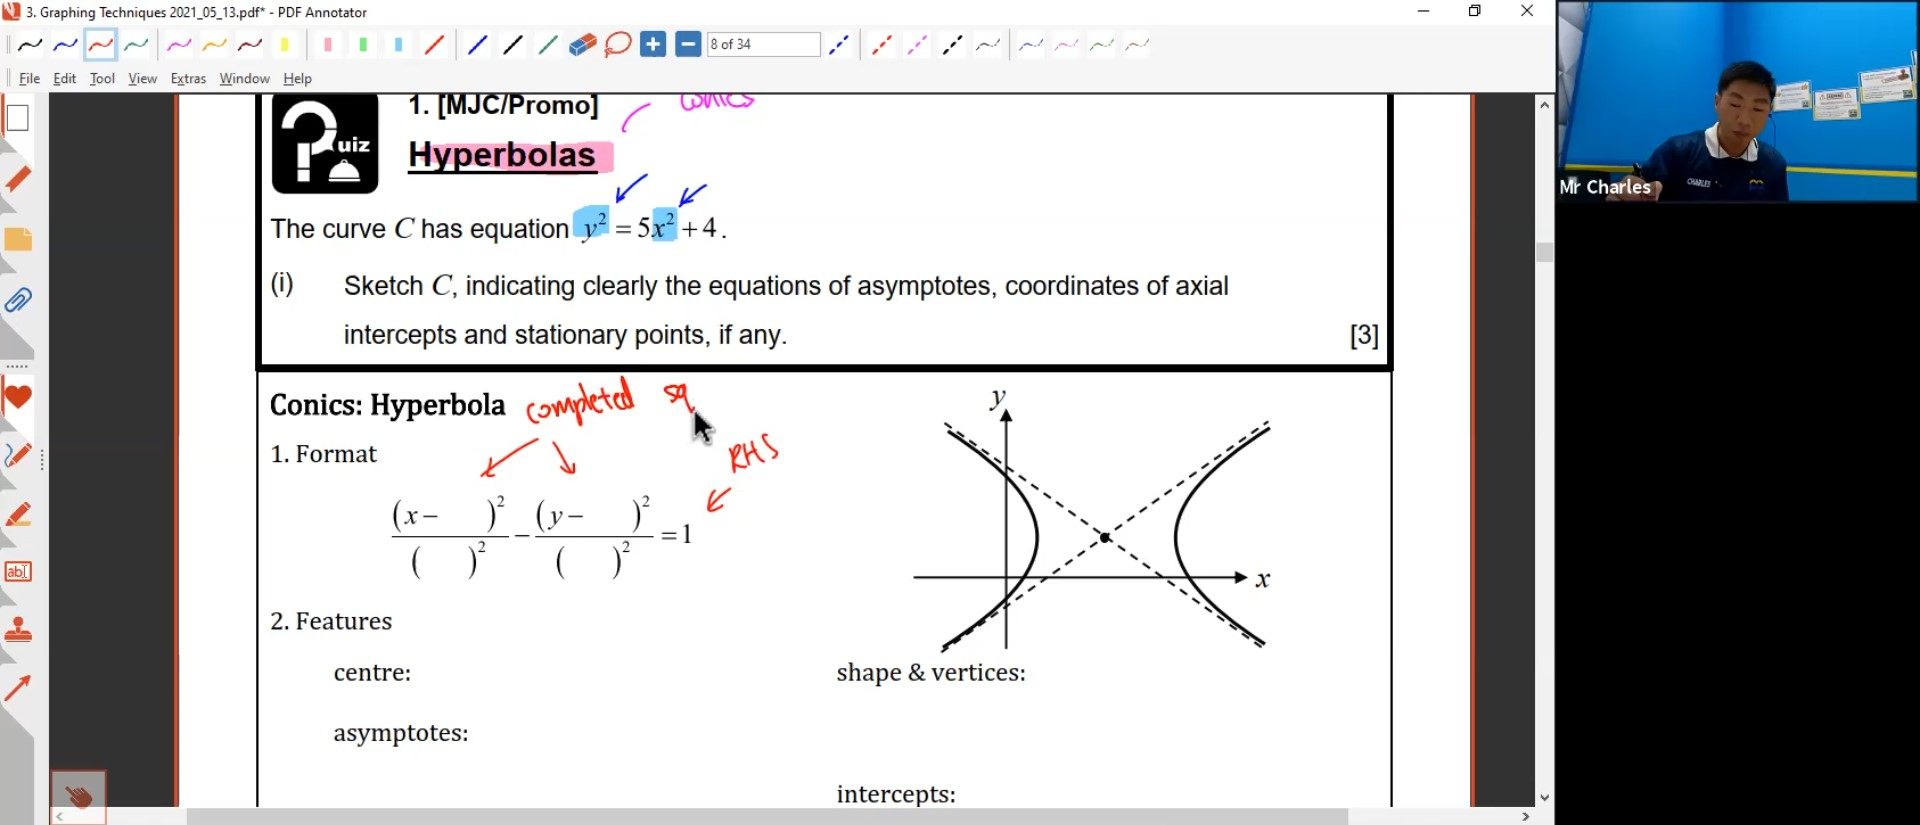 26. June Revision L2 Graphing 1